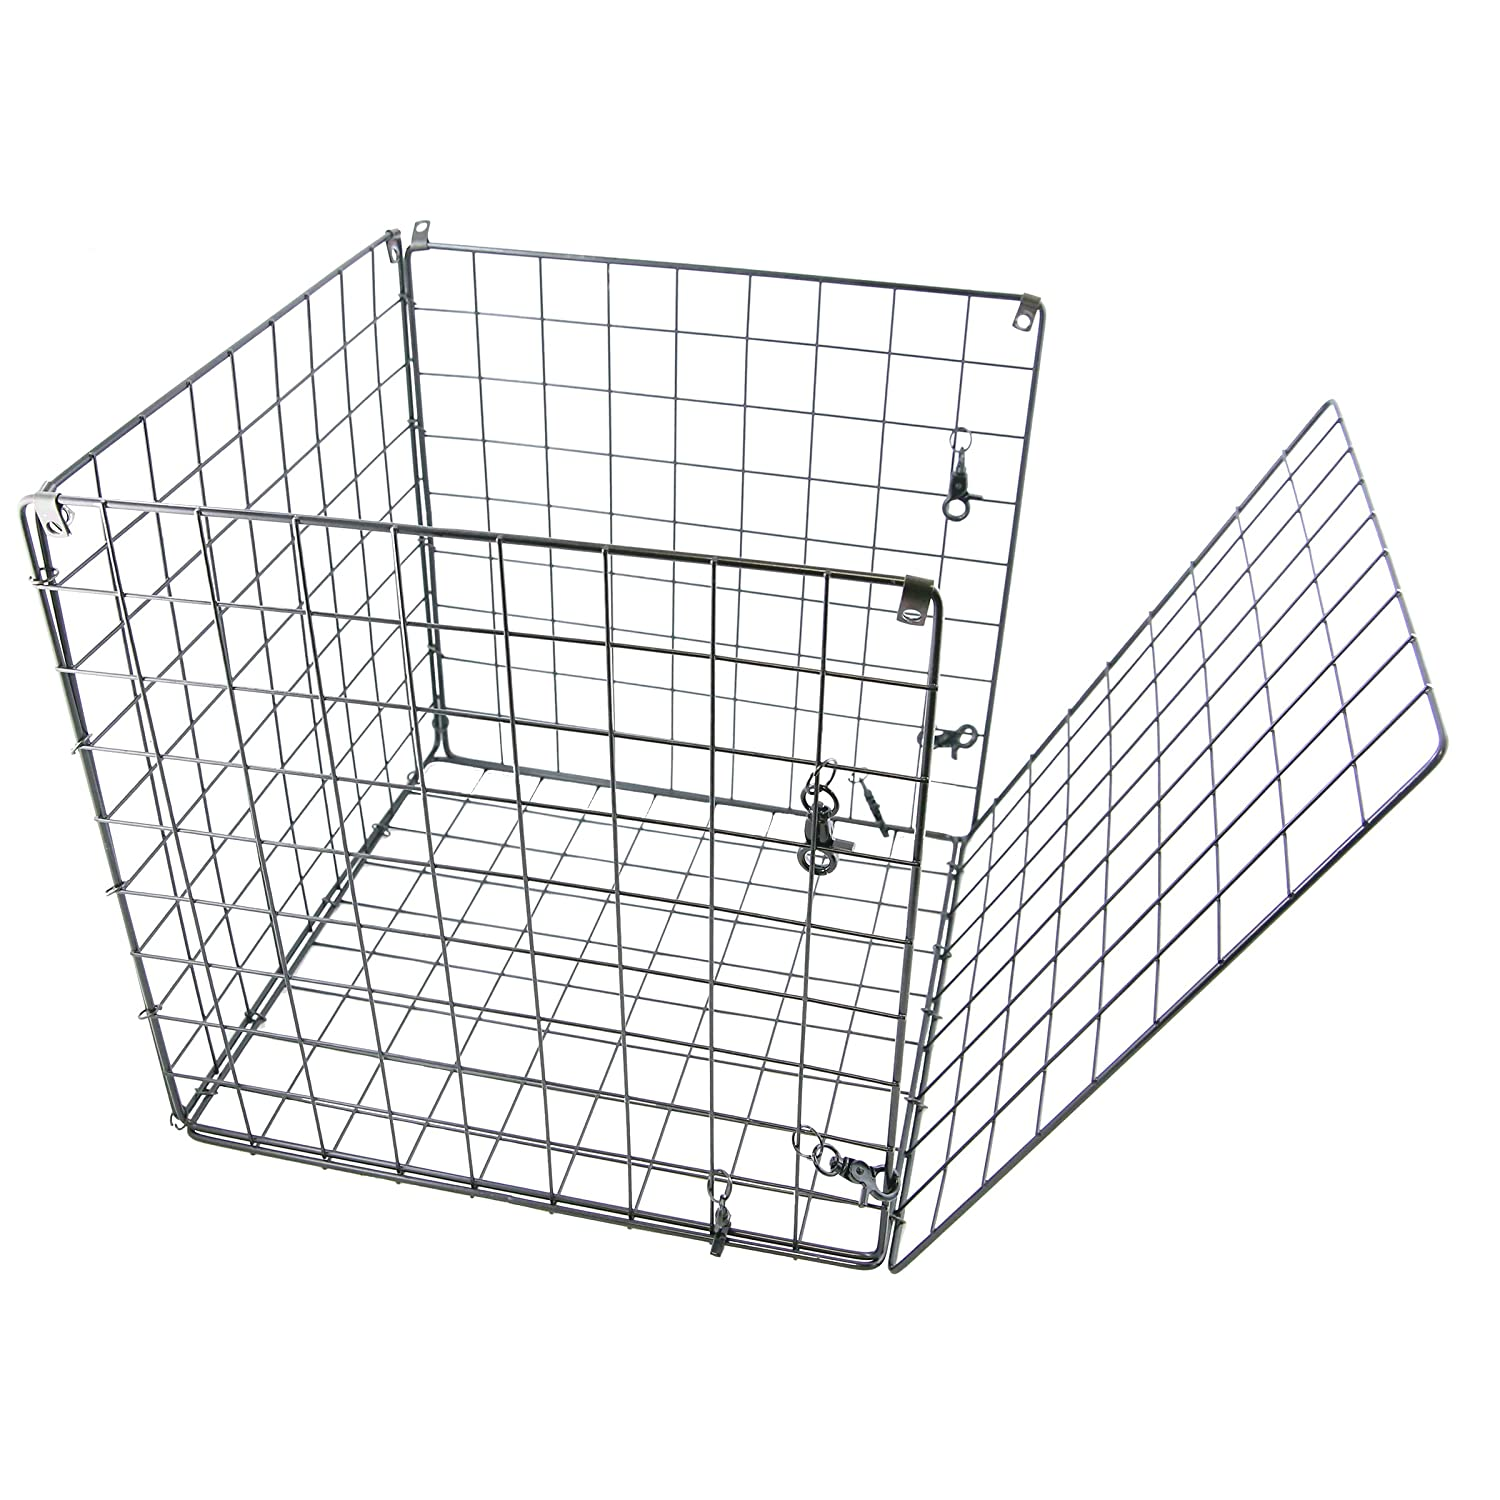 amazon com wildgame innovations varmint feeder cage sports outdoors rh amazon com Build a Deer Feeder Texas Deer Feeders